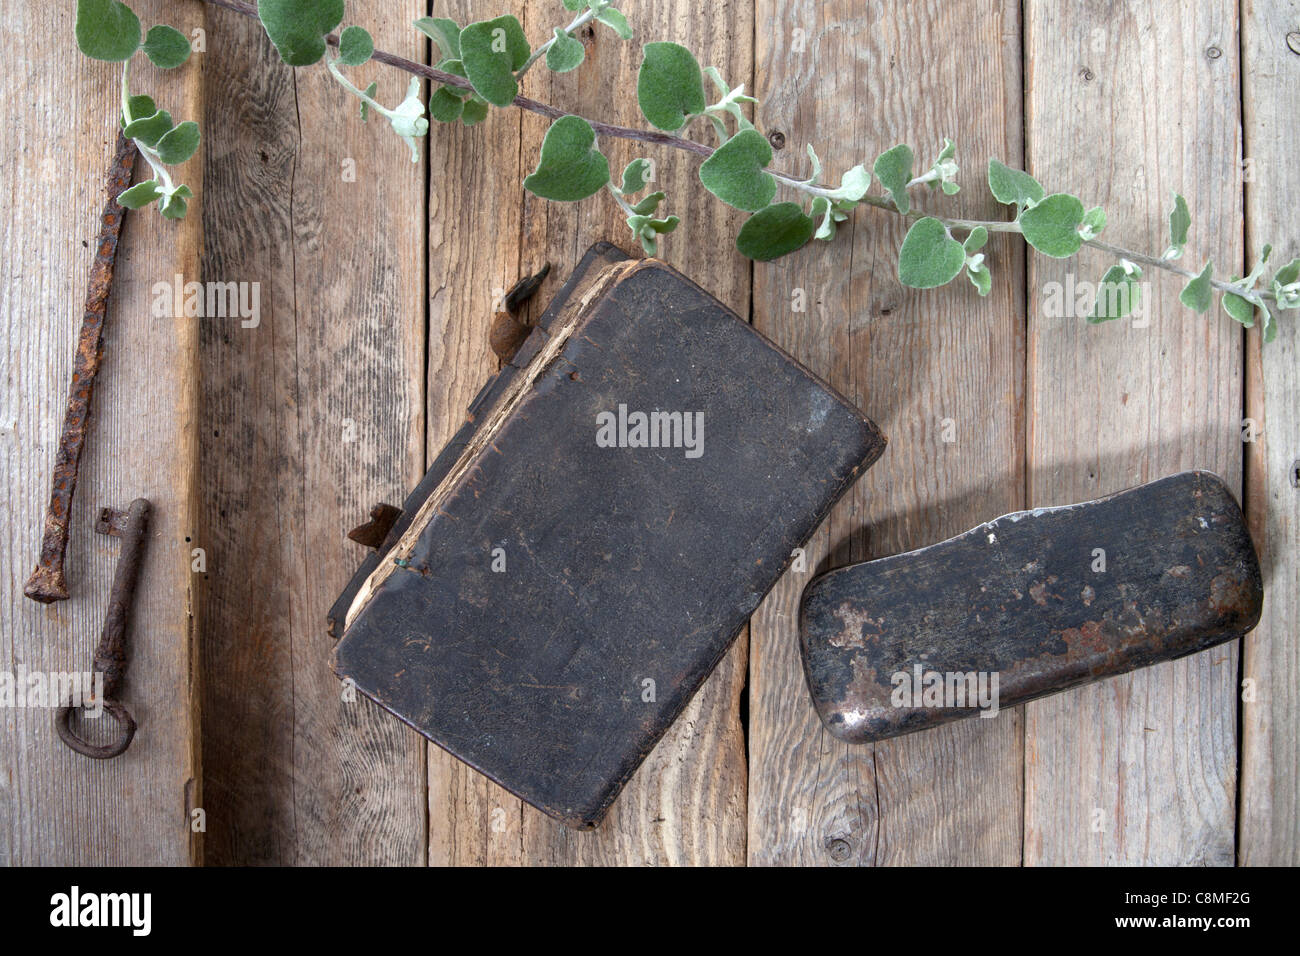 Group of objects on wood - Stock Image